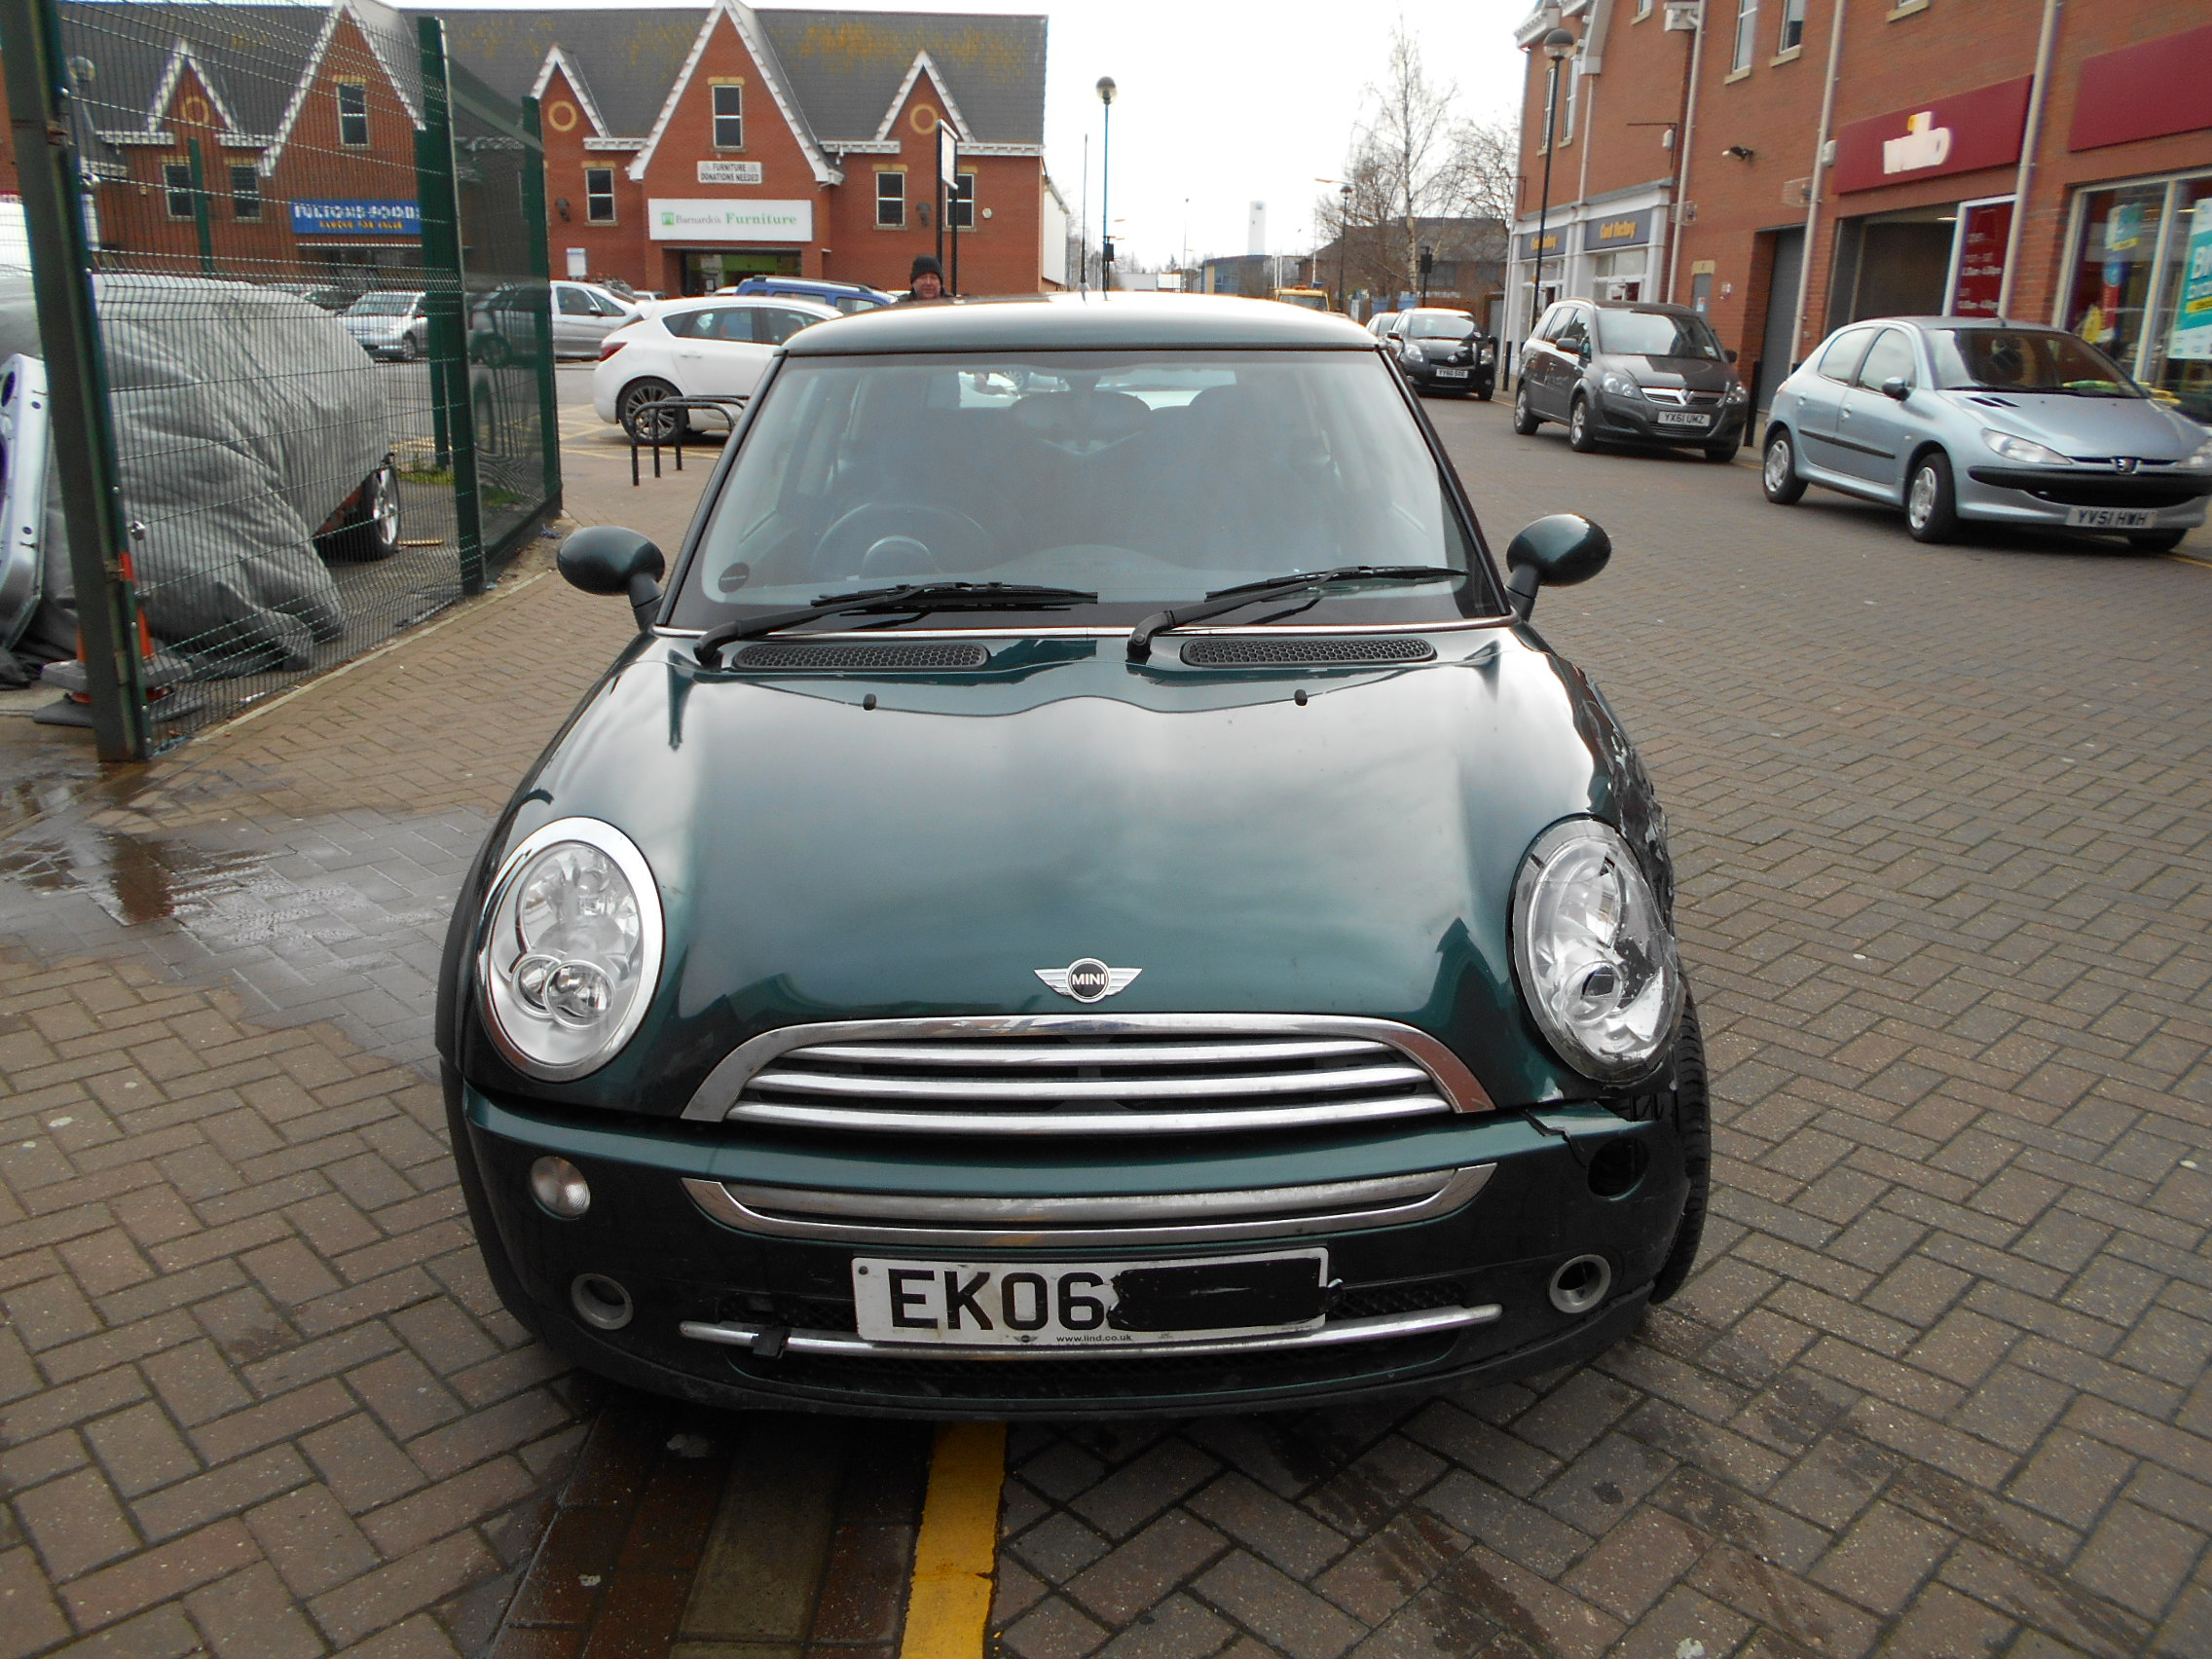 06 Green 1.6 BMW Mini One - 5